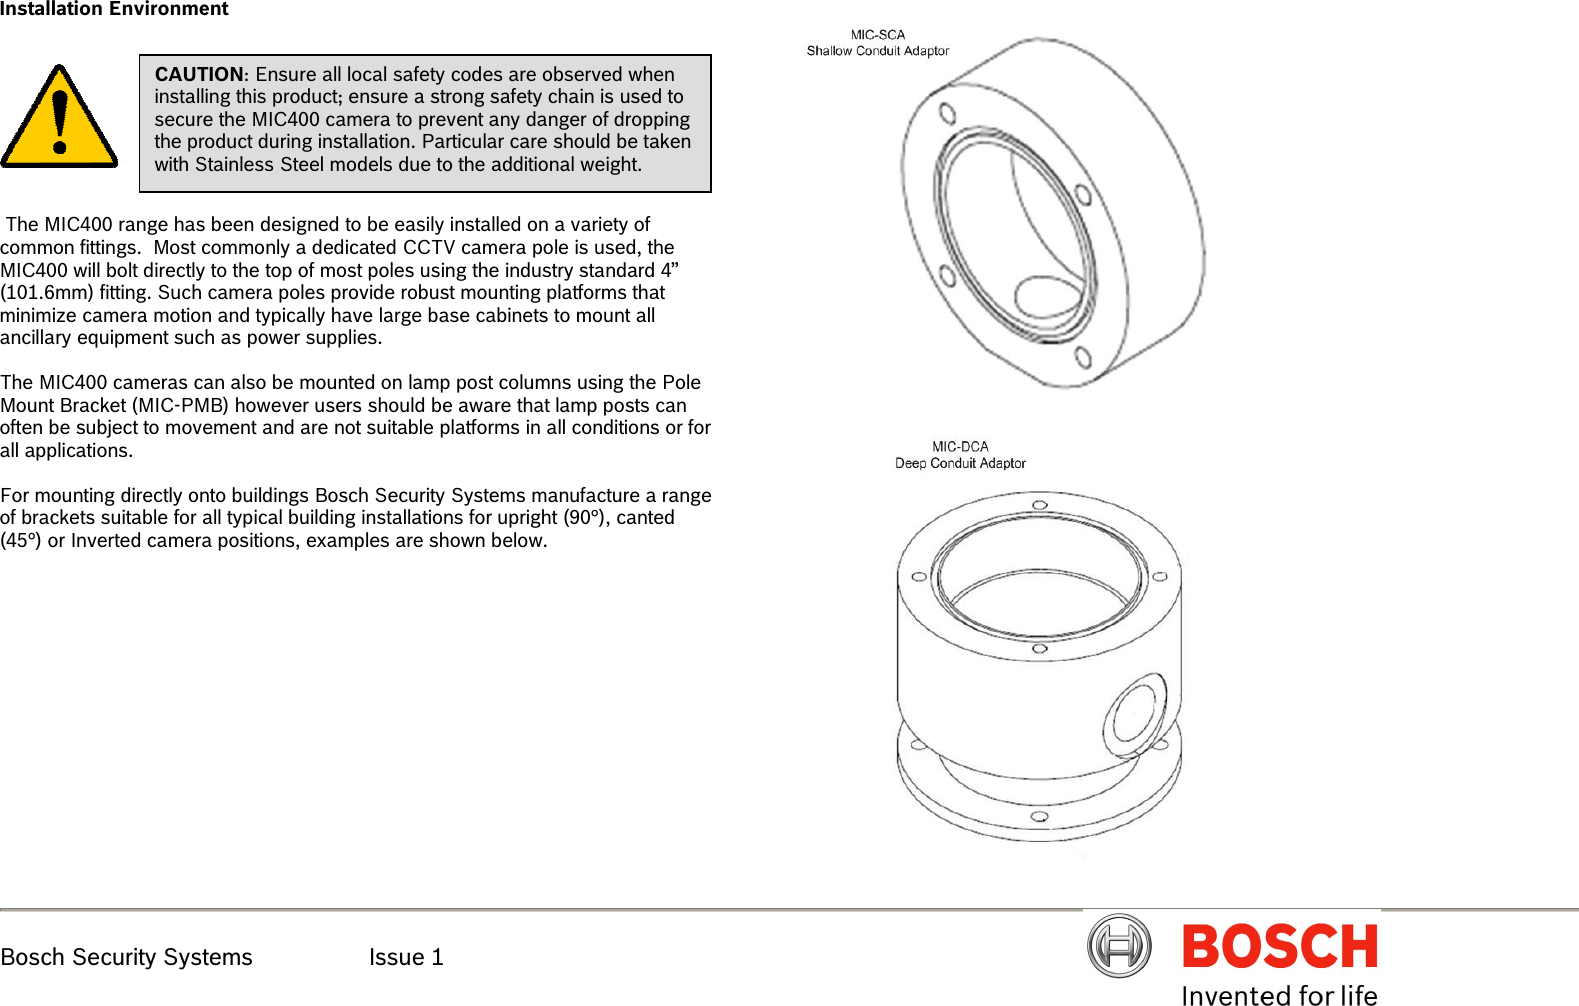 hight resolution of boschhome bosch appliances security camera mic400al users manual mic400 series ptz installation en issue 1x